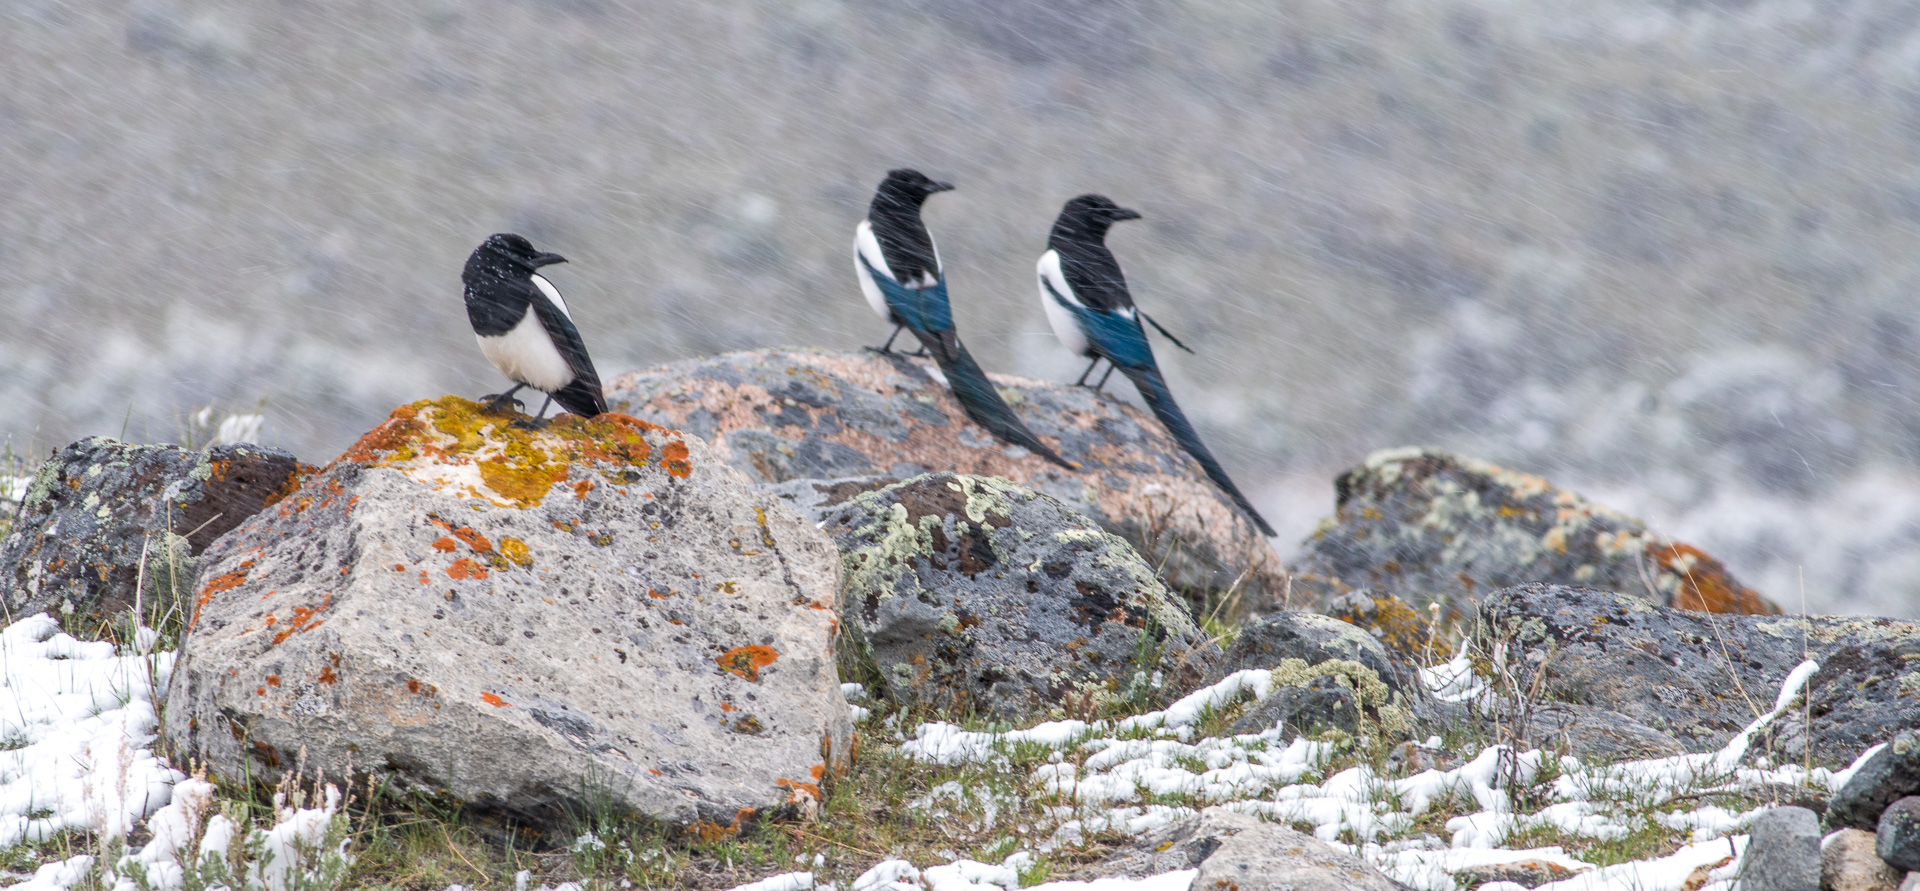 Black-billed Magpie trio on rocks in snow Yellowstone National Park WY -04872